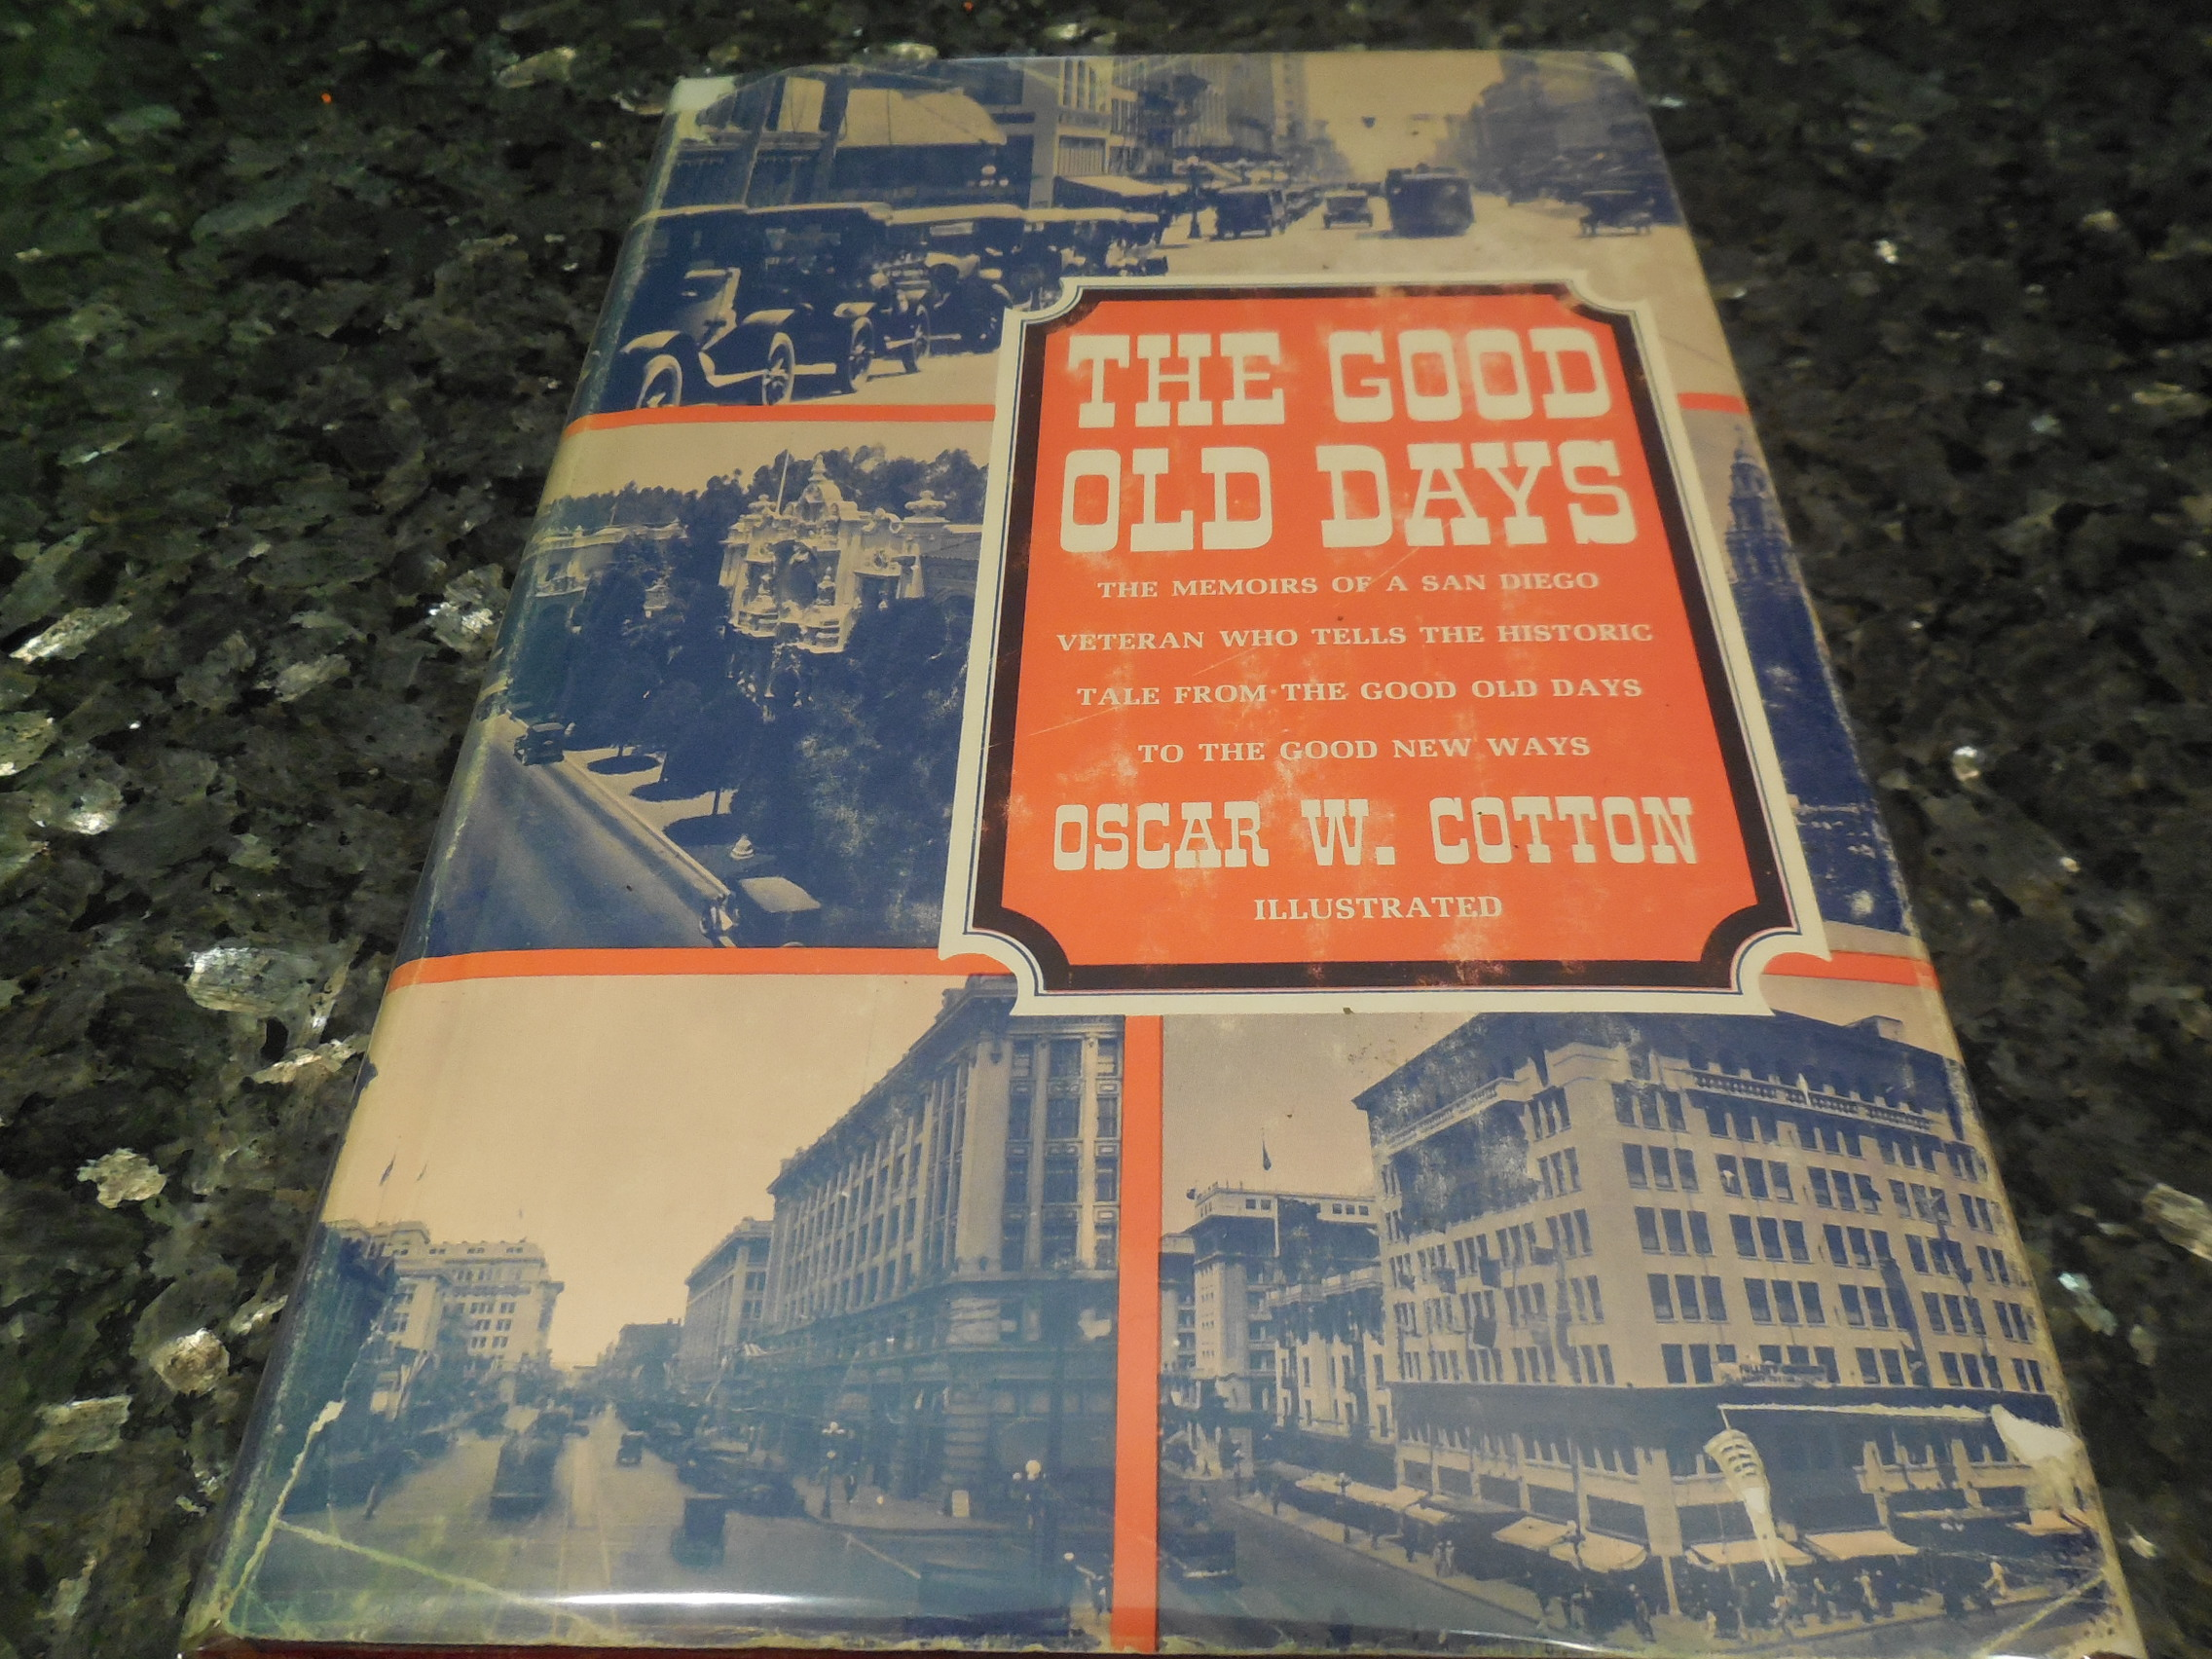 Image for The Good Old Days - The Memoirs of a San Diego Veteran Who Tells the Historic Tale From the Good Old Days to the Good New Ways